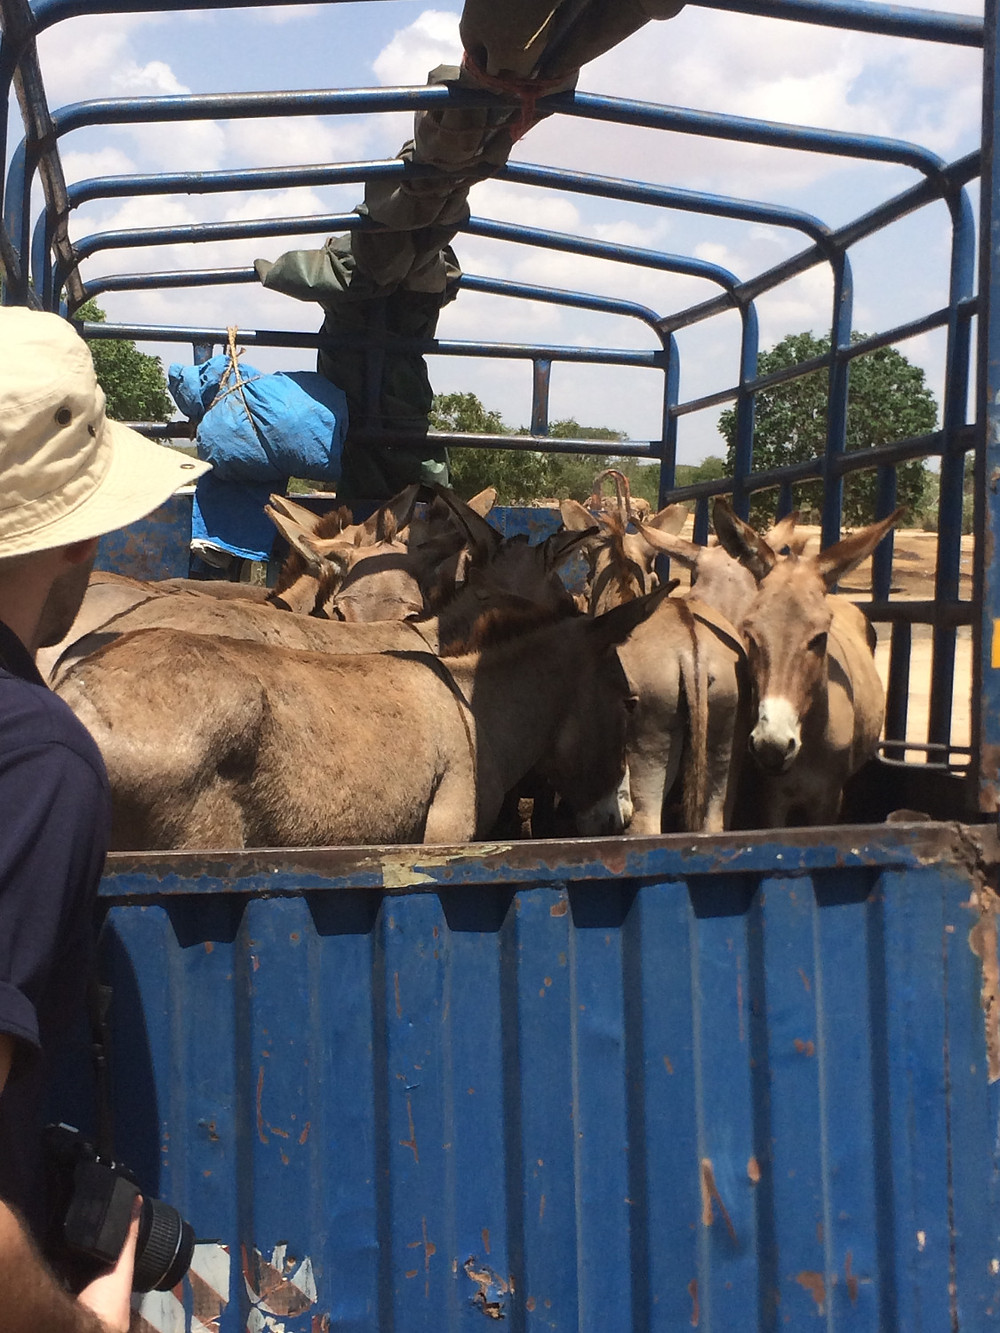 Donkeys being transported as part of the meat and skin trade